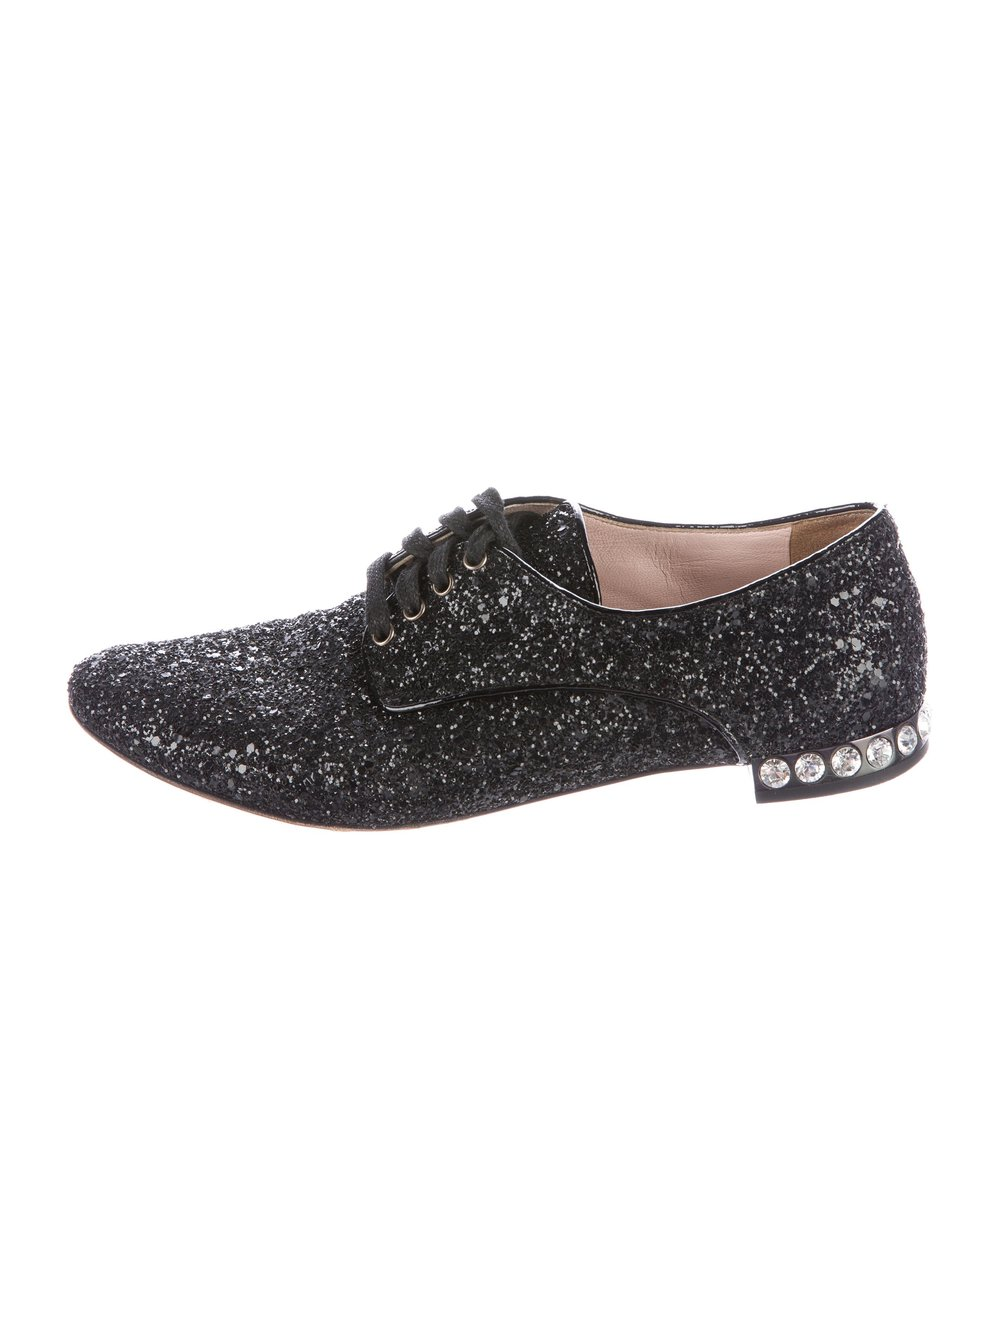 MIU MIU - EMBELLISHED GLITTER OXFORDS($245.00)